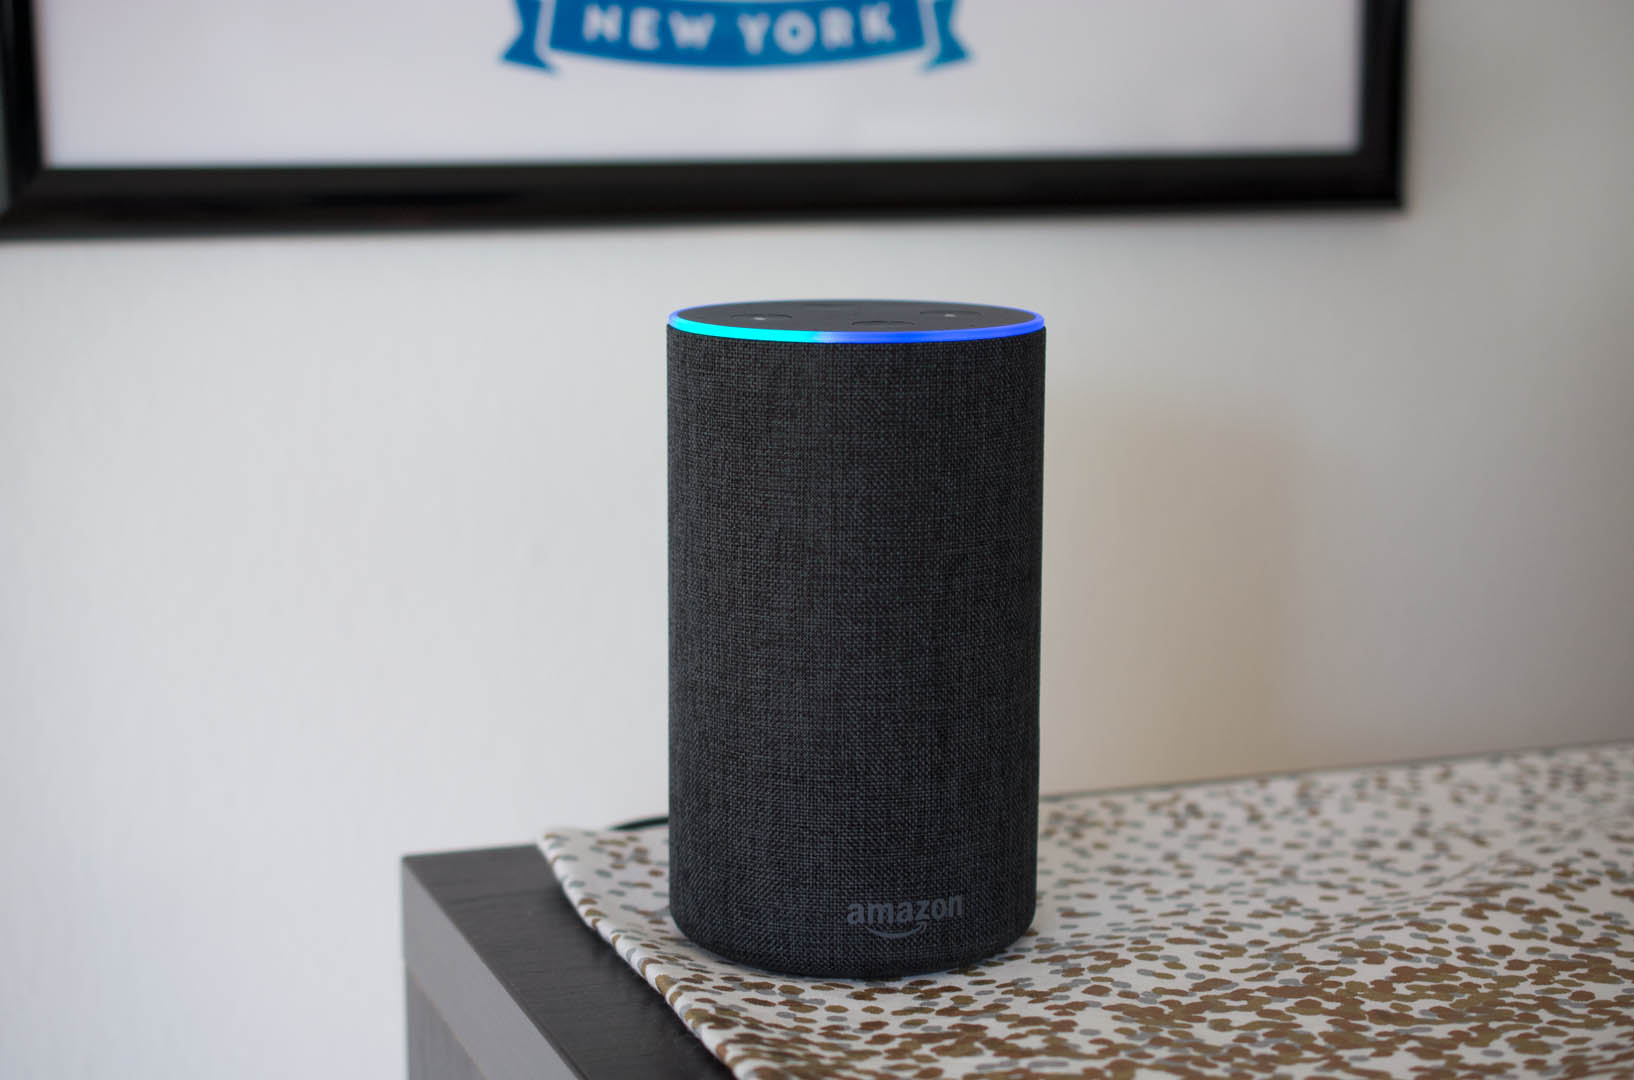 [H]ardOCP: 17% of Americans Use Smart Speakers